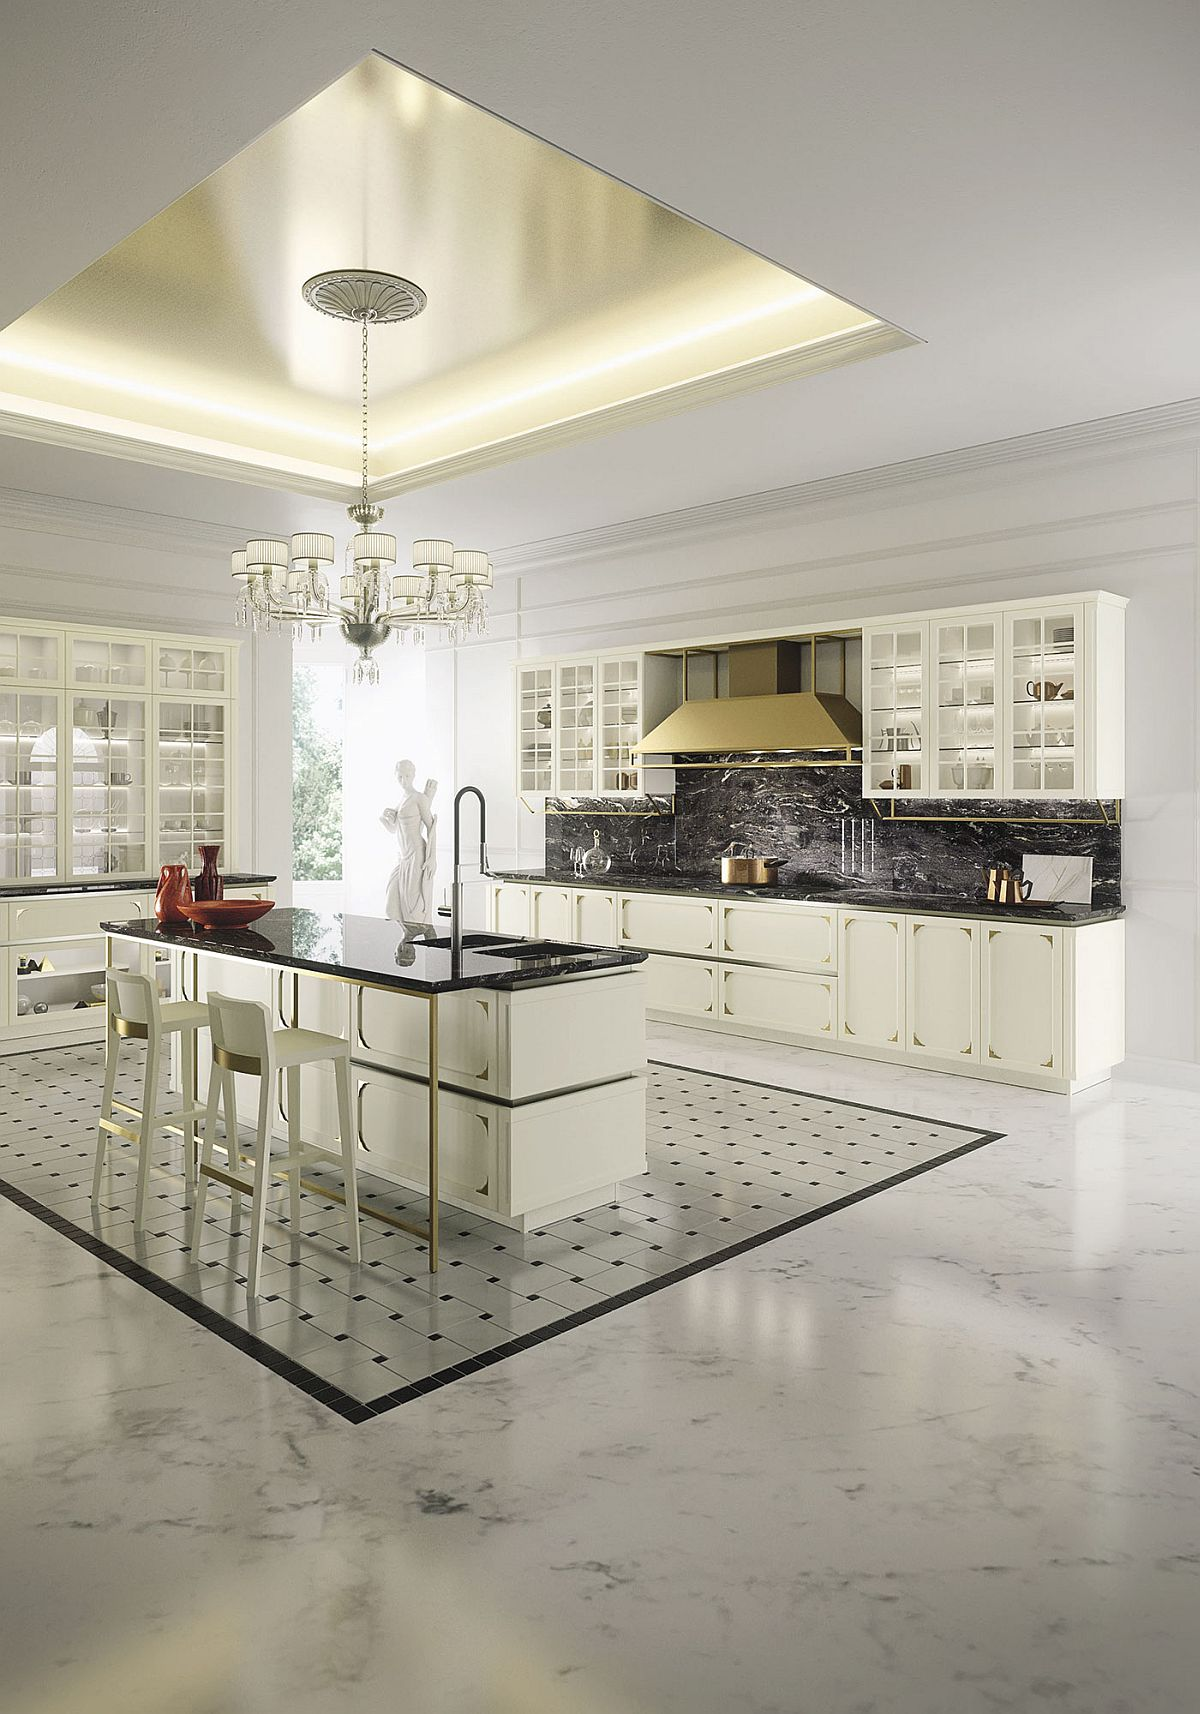 Beautiful and chic kitchen with dark, granite worktops and a white backdrop